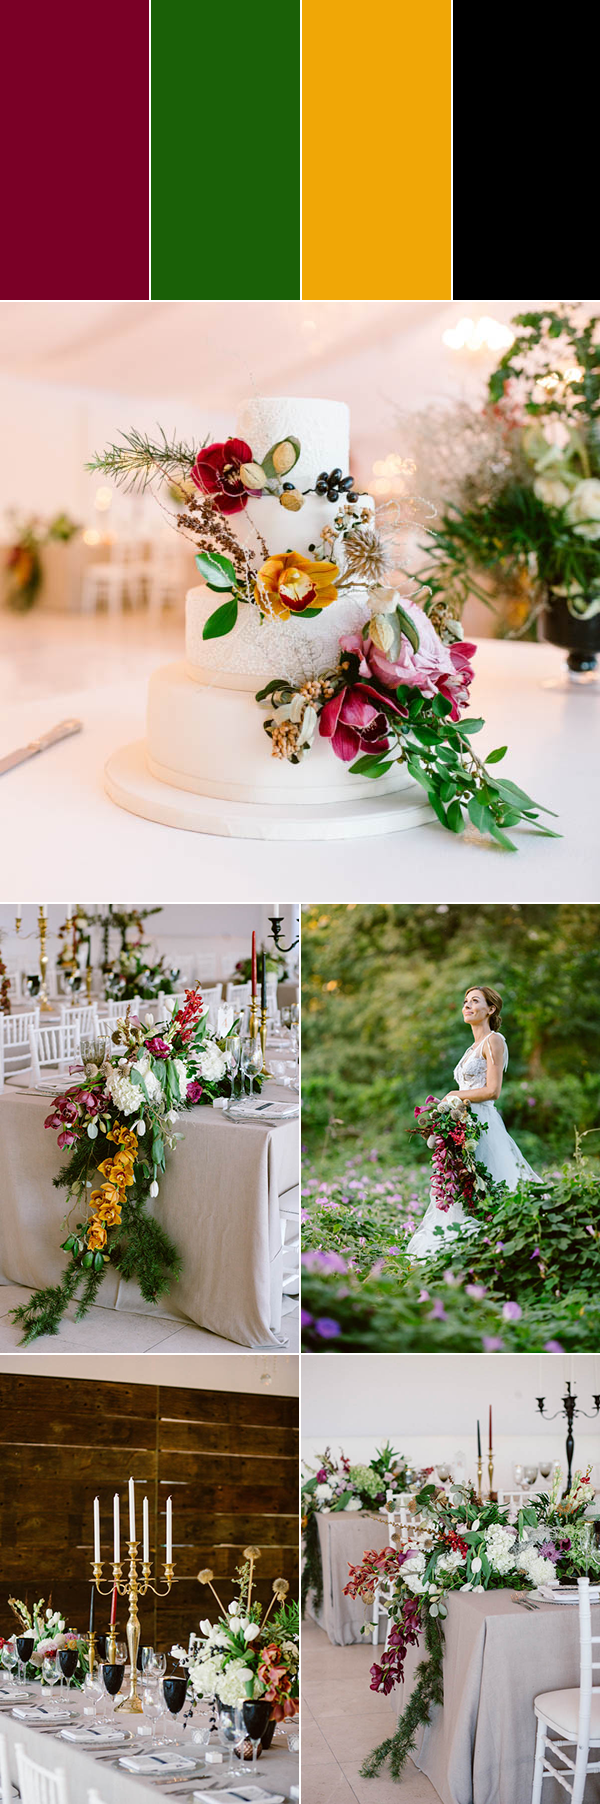 5 Burgundy Color Palette Ideas To Make You Rethink Your Wedding